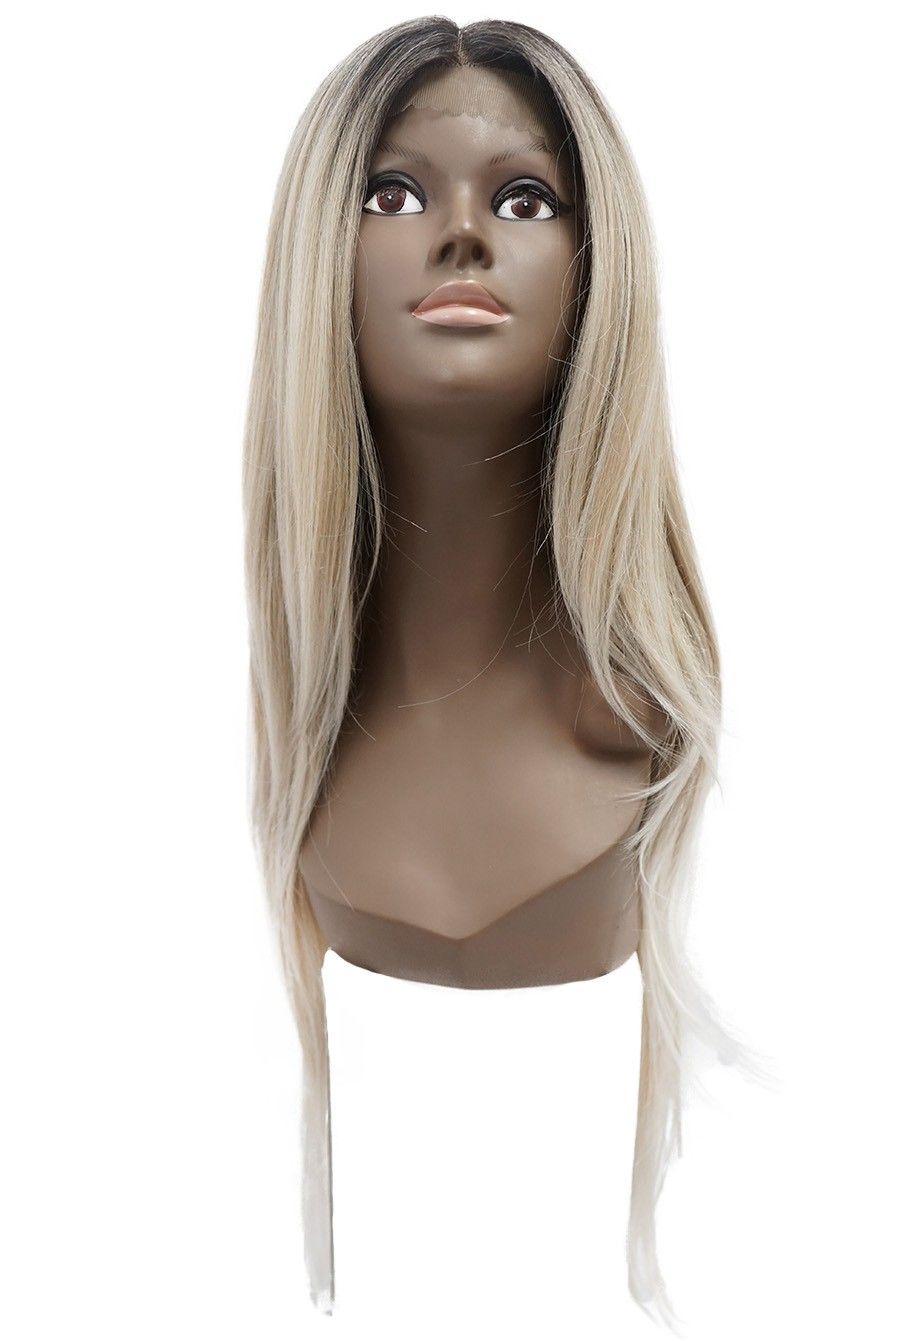 Peruca Orgânica - Front/Top Lace Sleek Wig Fashion - Riva